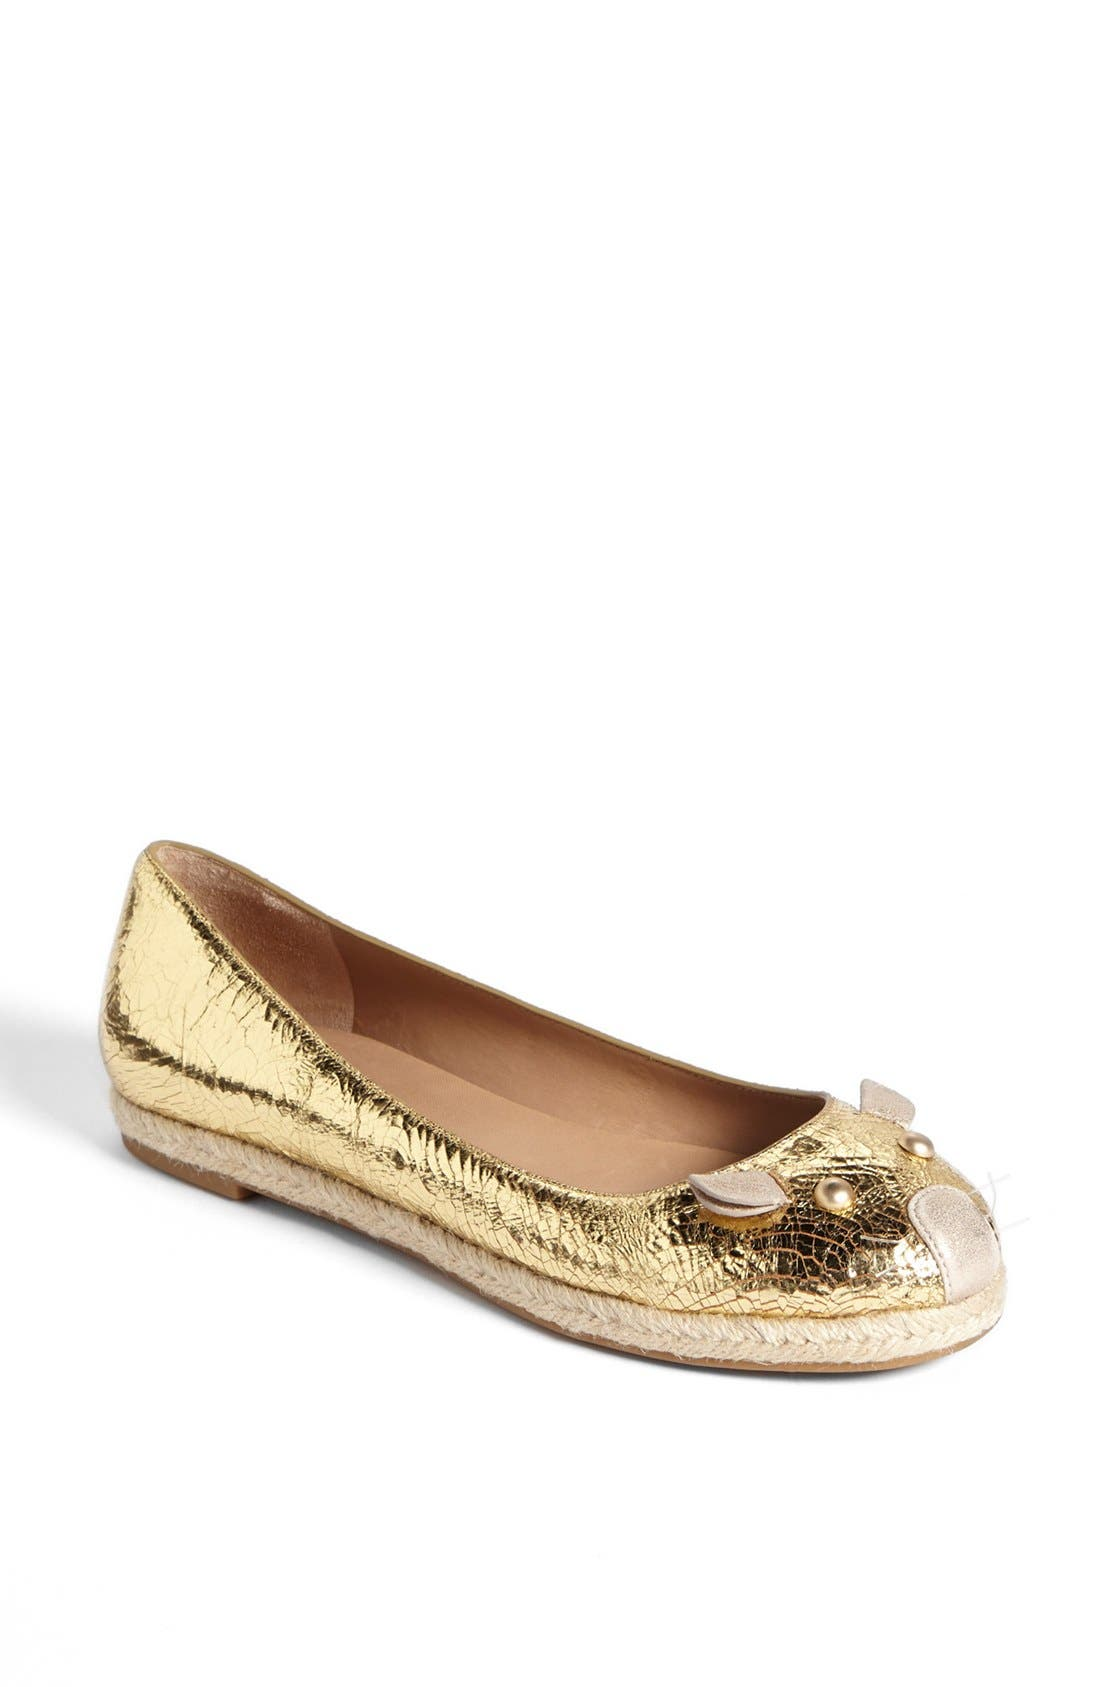 Alternate Image 1 Selected - MARC BY MARC JACOBS 'Mouse' Metallic Calfskin Leather Espadrille Flat